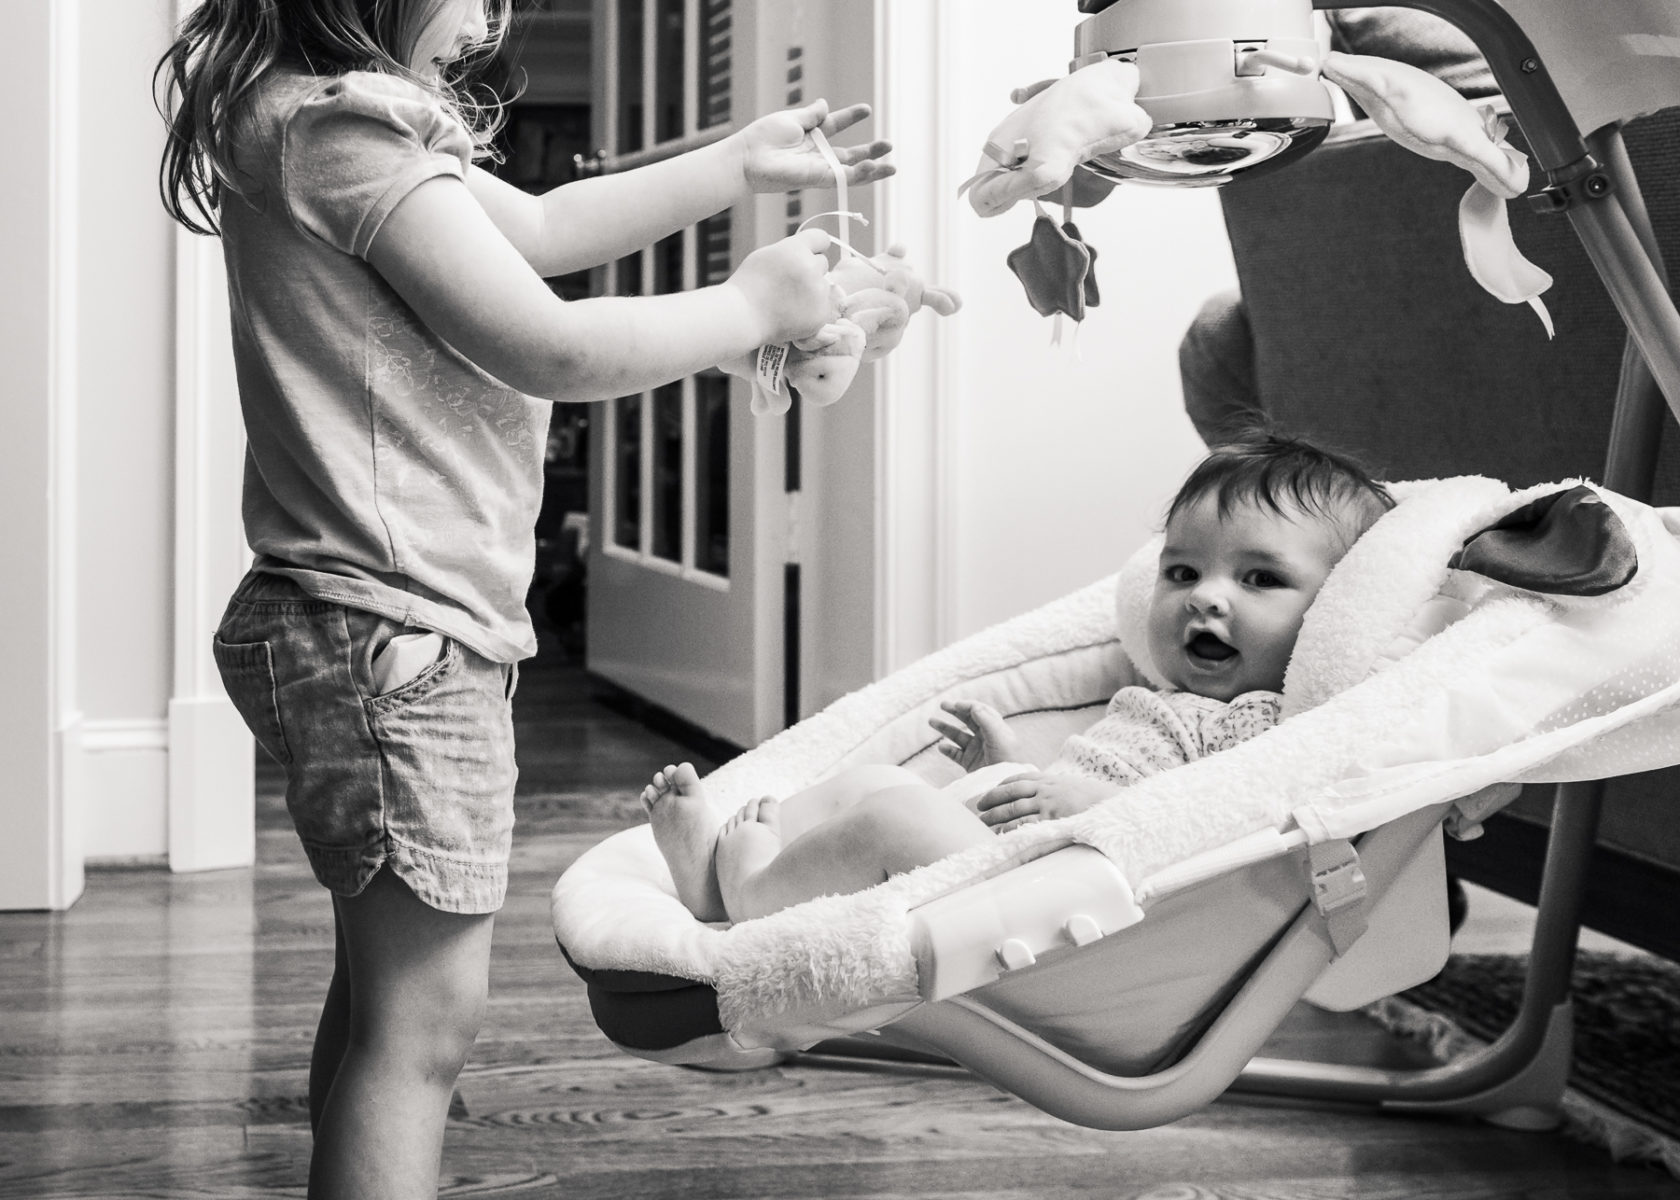 Baby in infant swing watches big sister take toys